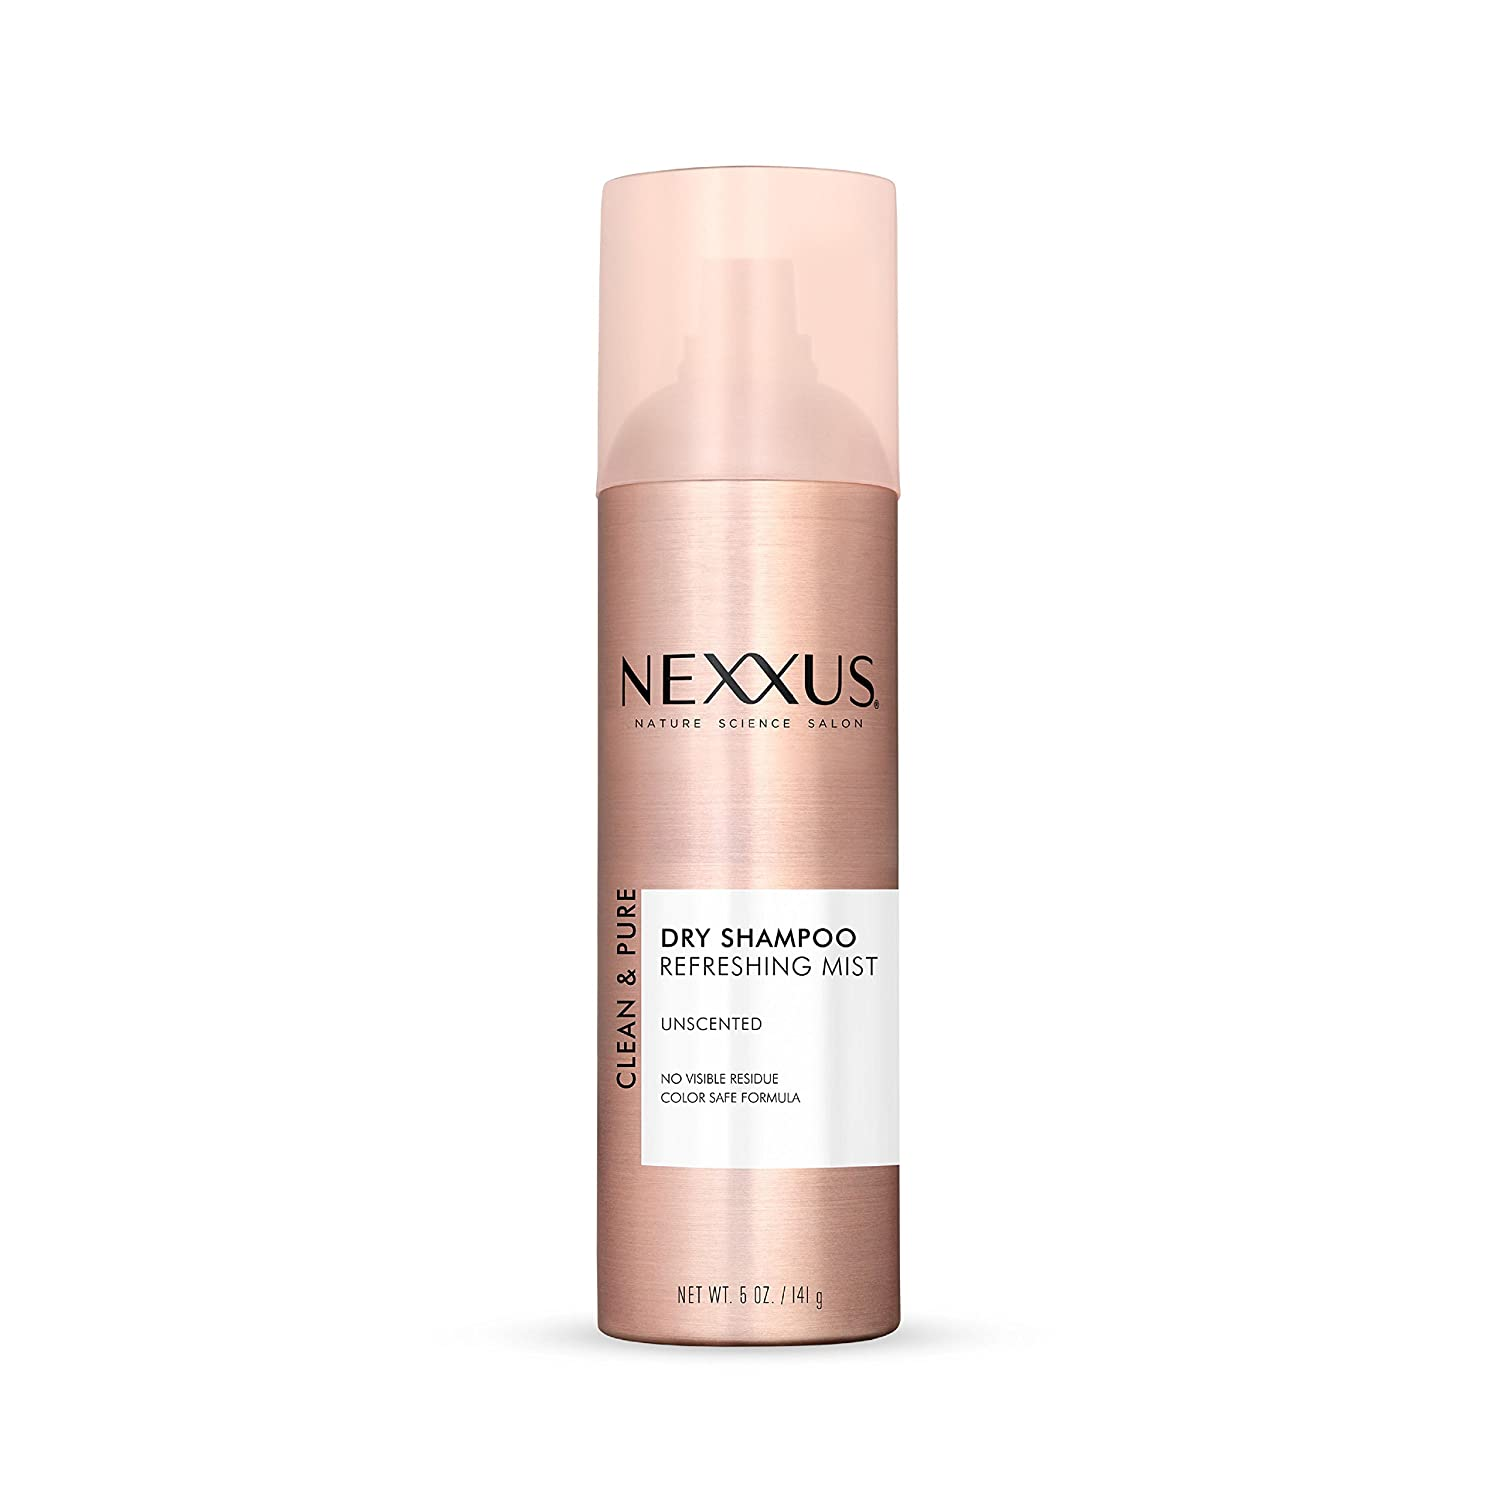 Nexxus Clean & Pure Unscented Dry Shampoo, 5 Ounce